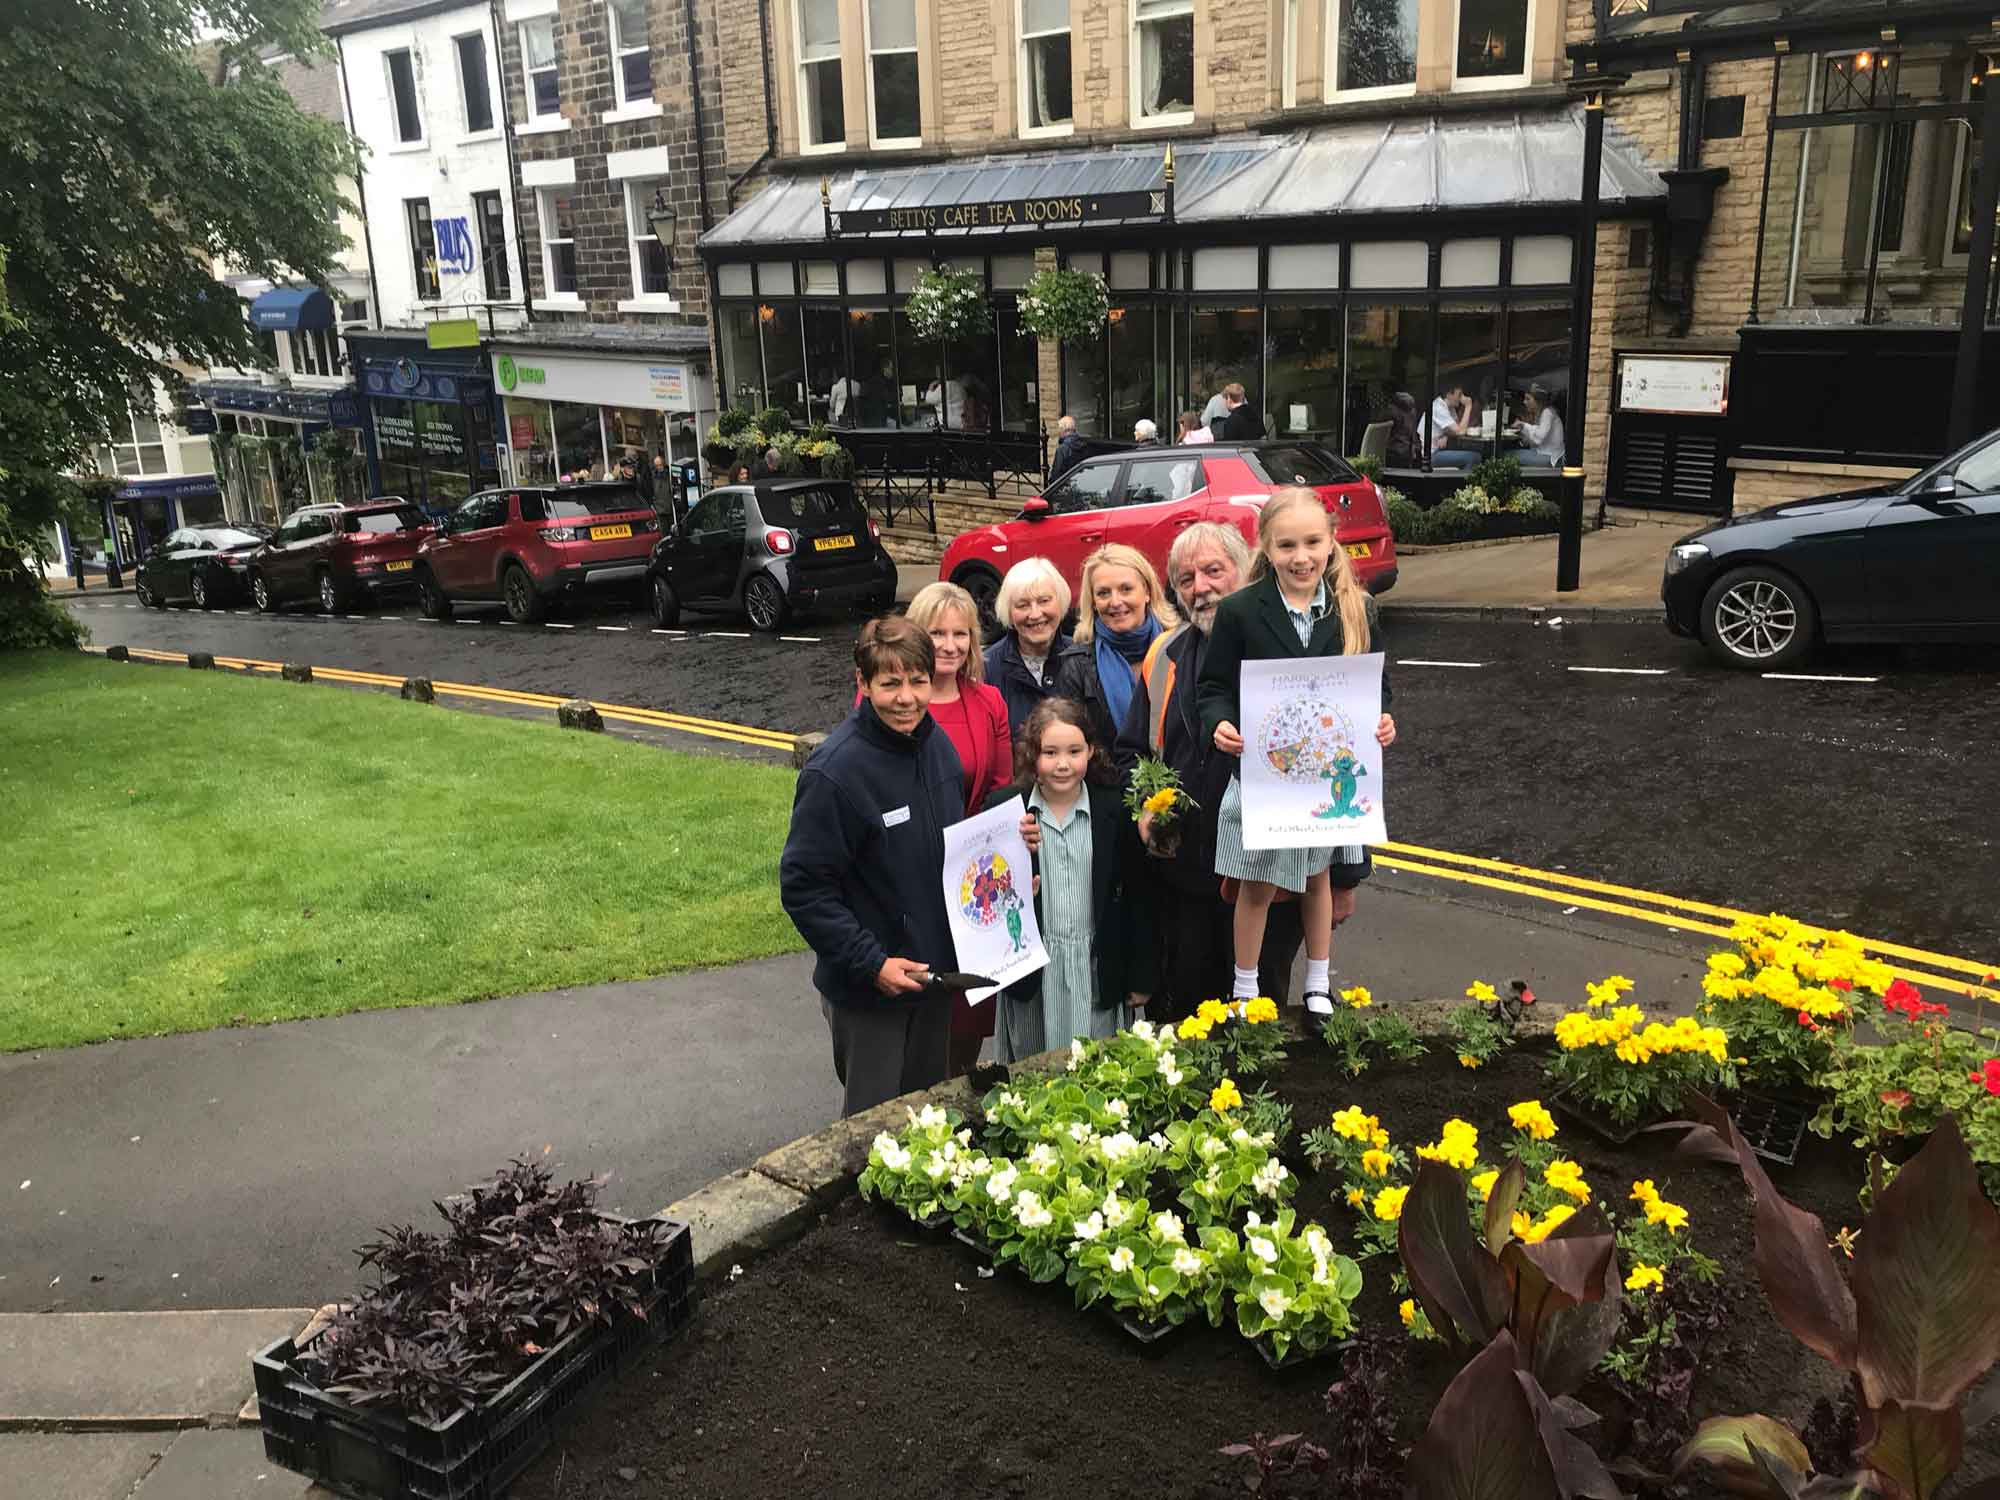 pictured is Head Teacher Nicola Matthews, Horticultural Officer Sue Wood and Gardener Richard Gilbert along with Pam Grant, President of Harrogate in Bloom and Fiona Fisk of competition sponsor Harrogate Flower Shows